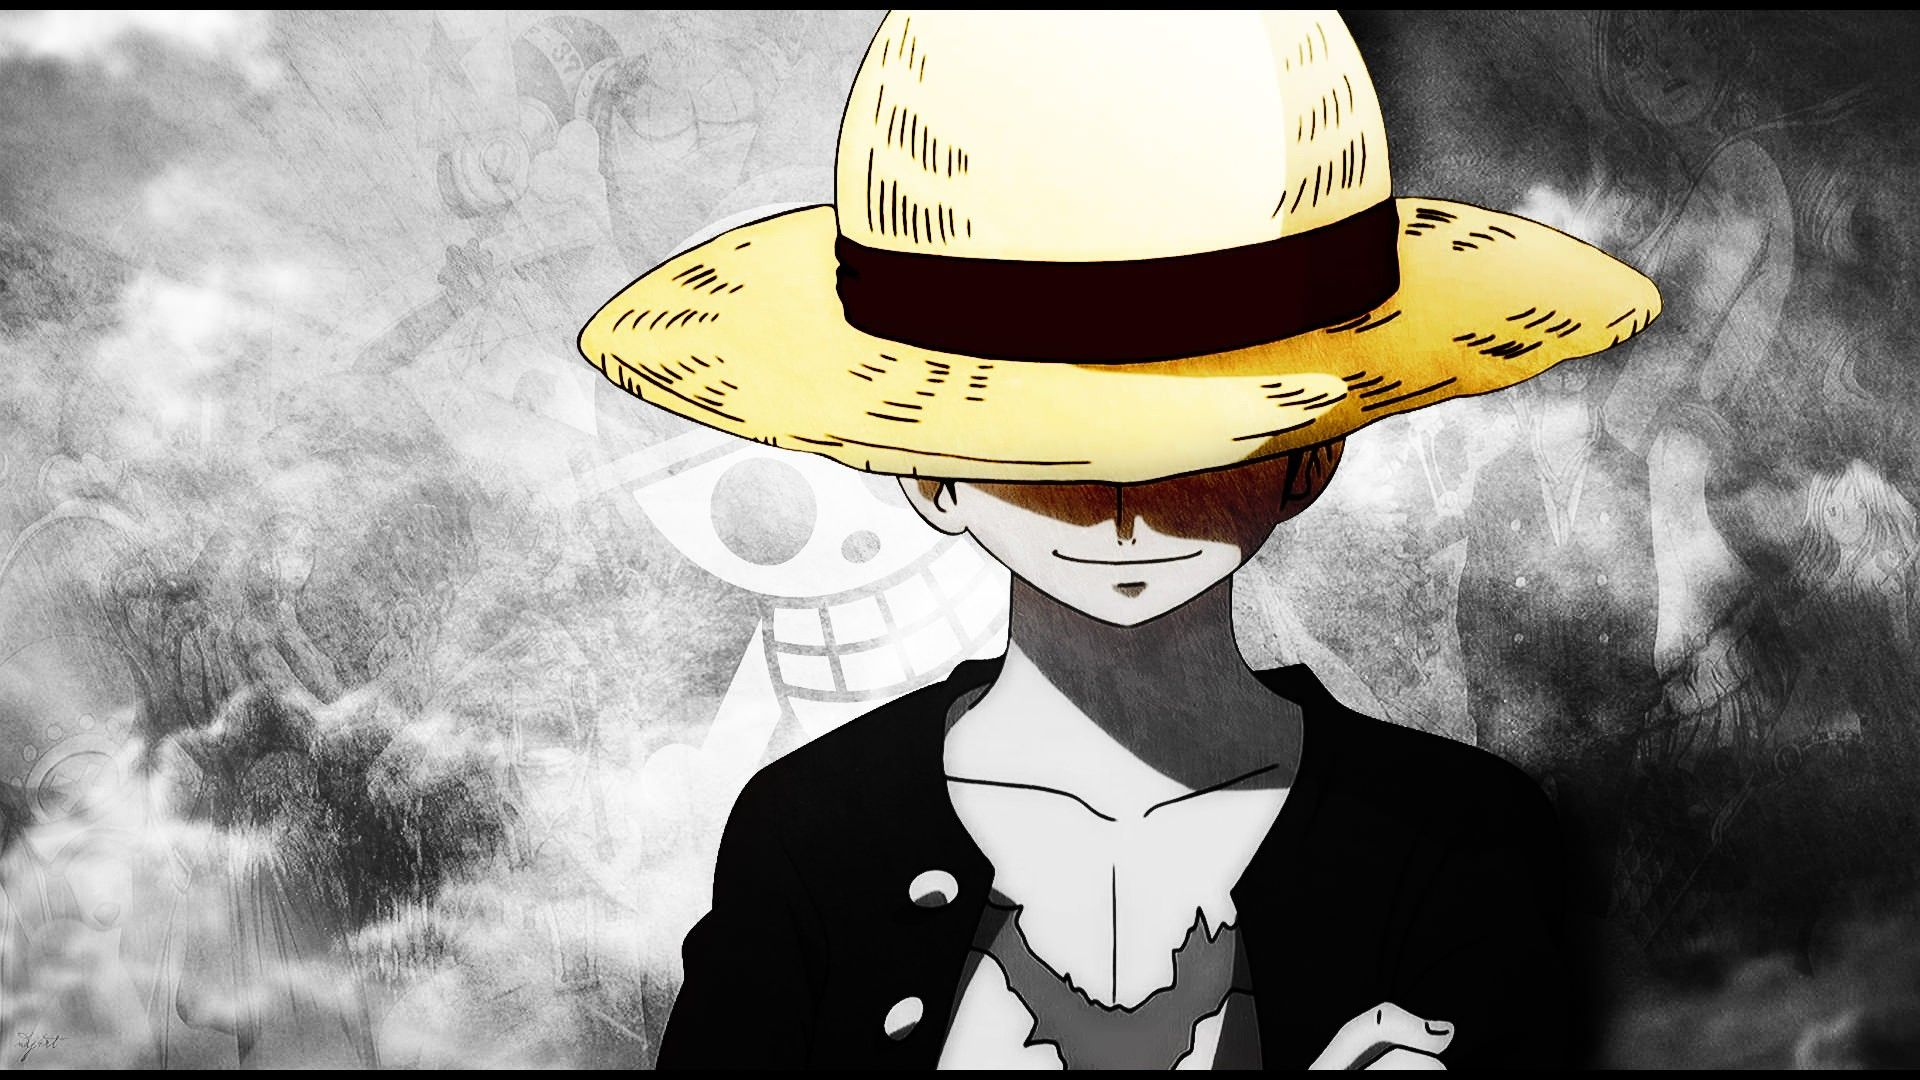 One Piece Luffy Wallpaper High Resolution Wallpapers